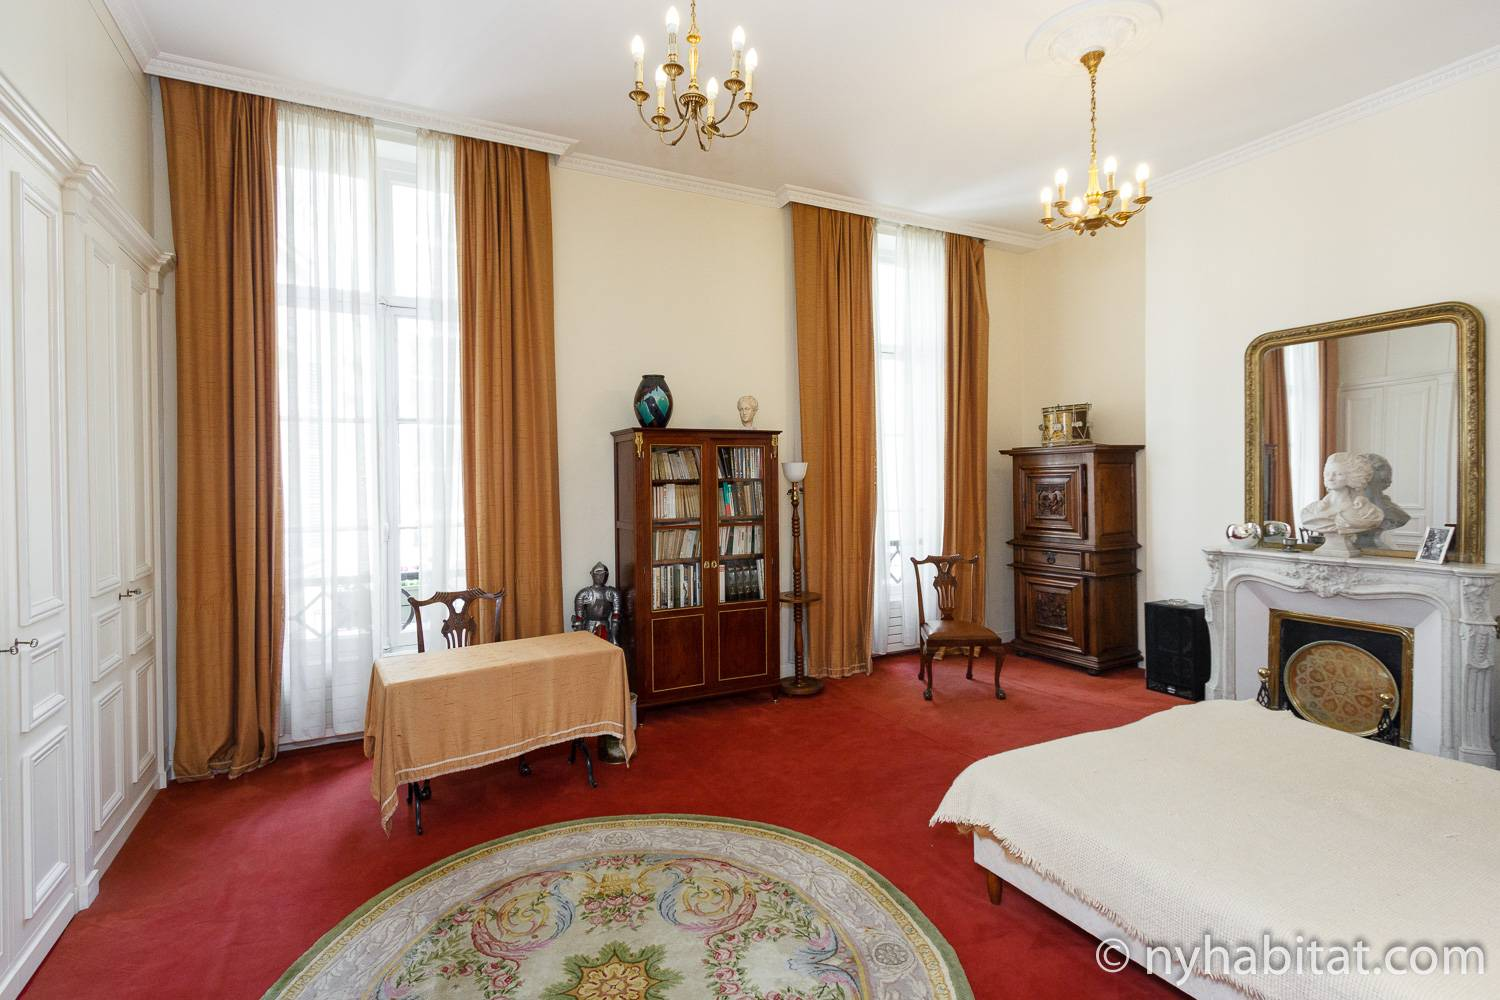 Image of Paris furnished rental PA-3231 with large French windows, chandeliers, decorative fireplace and red carpet.